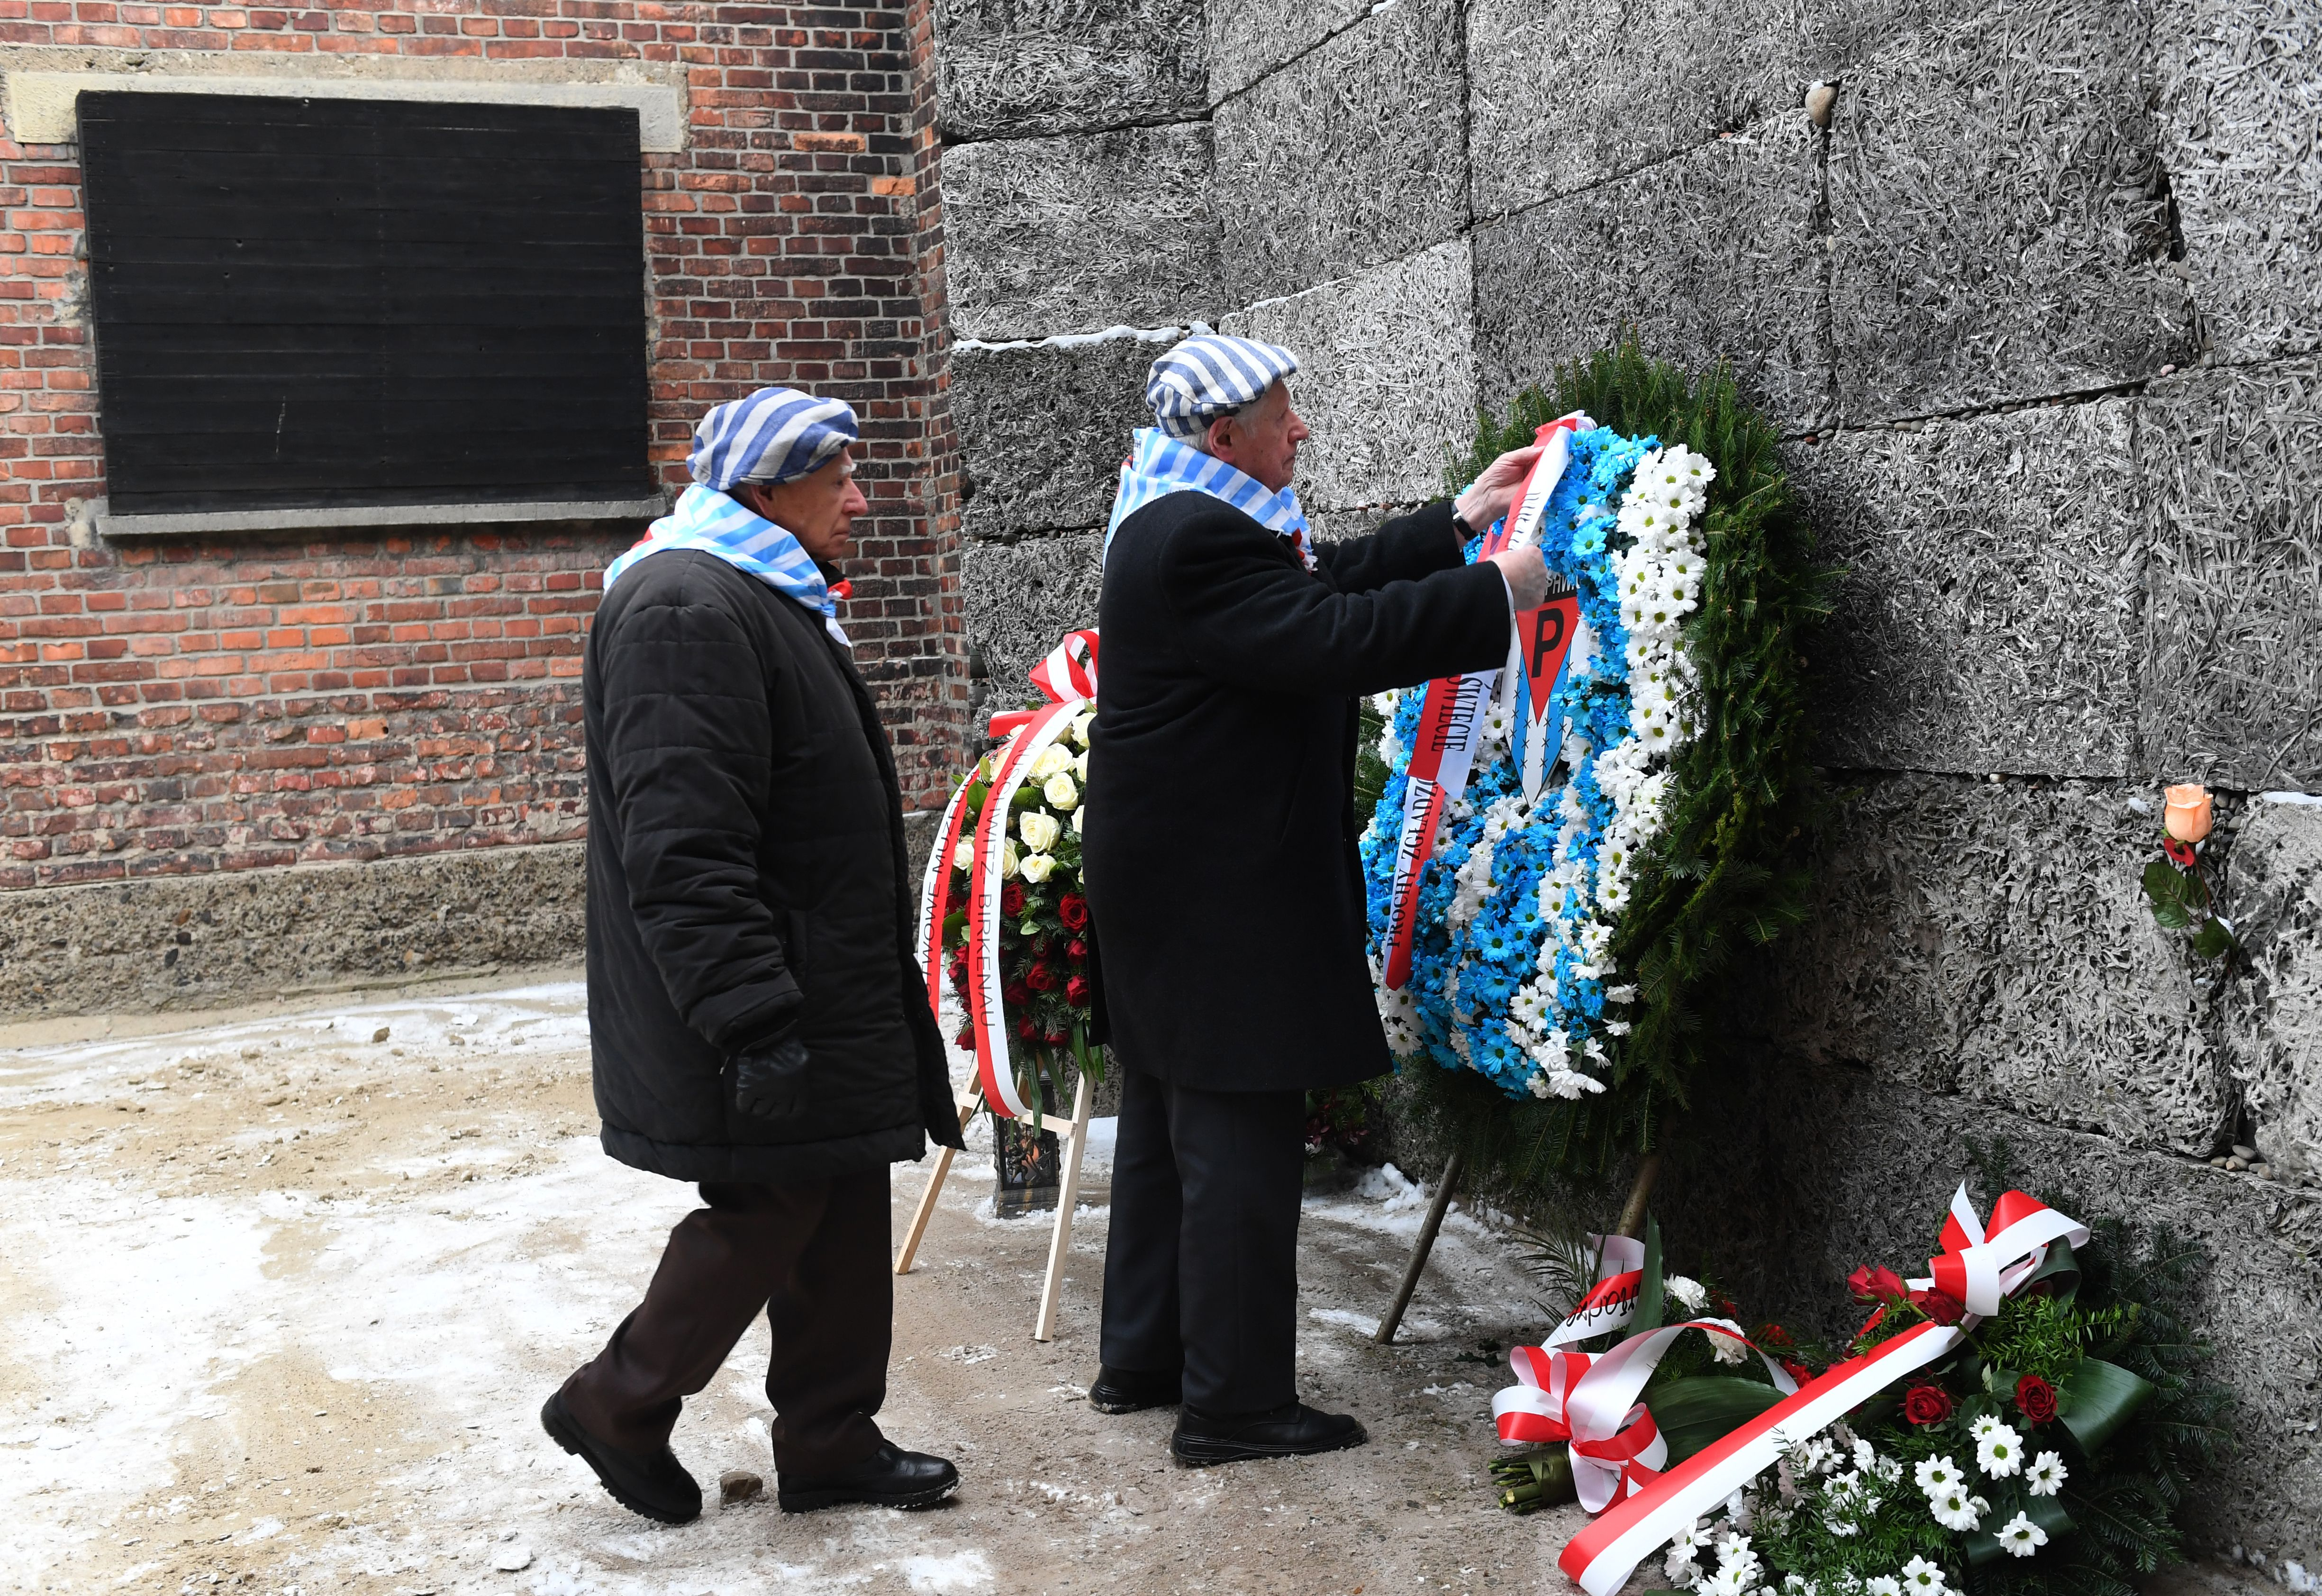 Former prisoners lay a wreath at the Death Wall marking the 74th anniversary of the liberation of former German Nazi death camp Auschwitz-Birkenau, in Oswiecim, Poland, on January 27, 2019. (Photo by Janek SKARZYNSKI / AFP)        (Photo credit should read JANEK SKARZYNSKI/AFP/Getty Images)